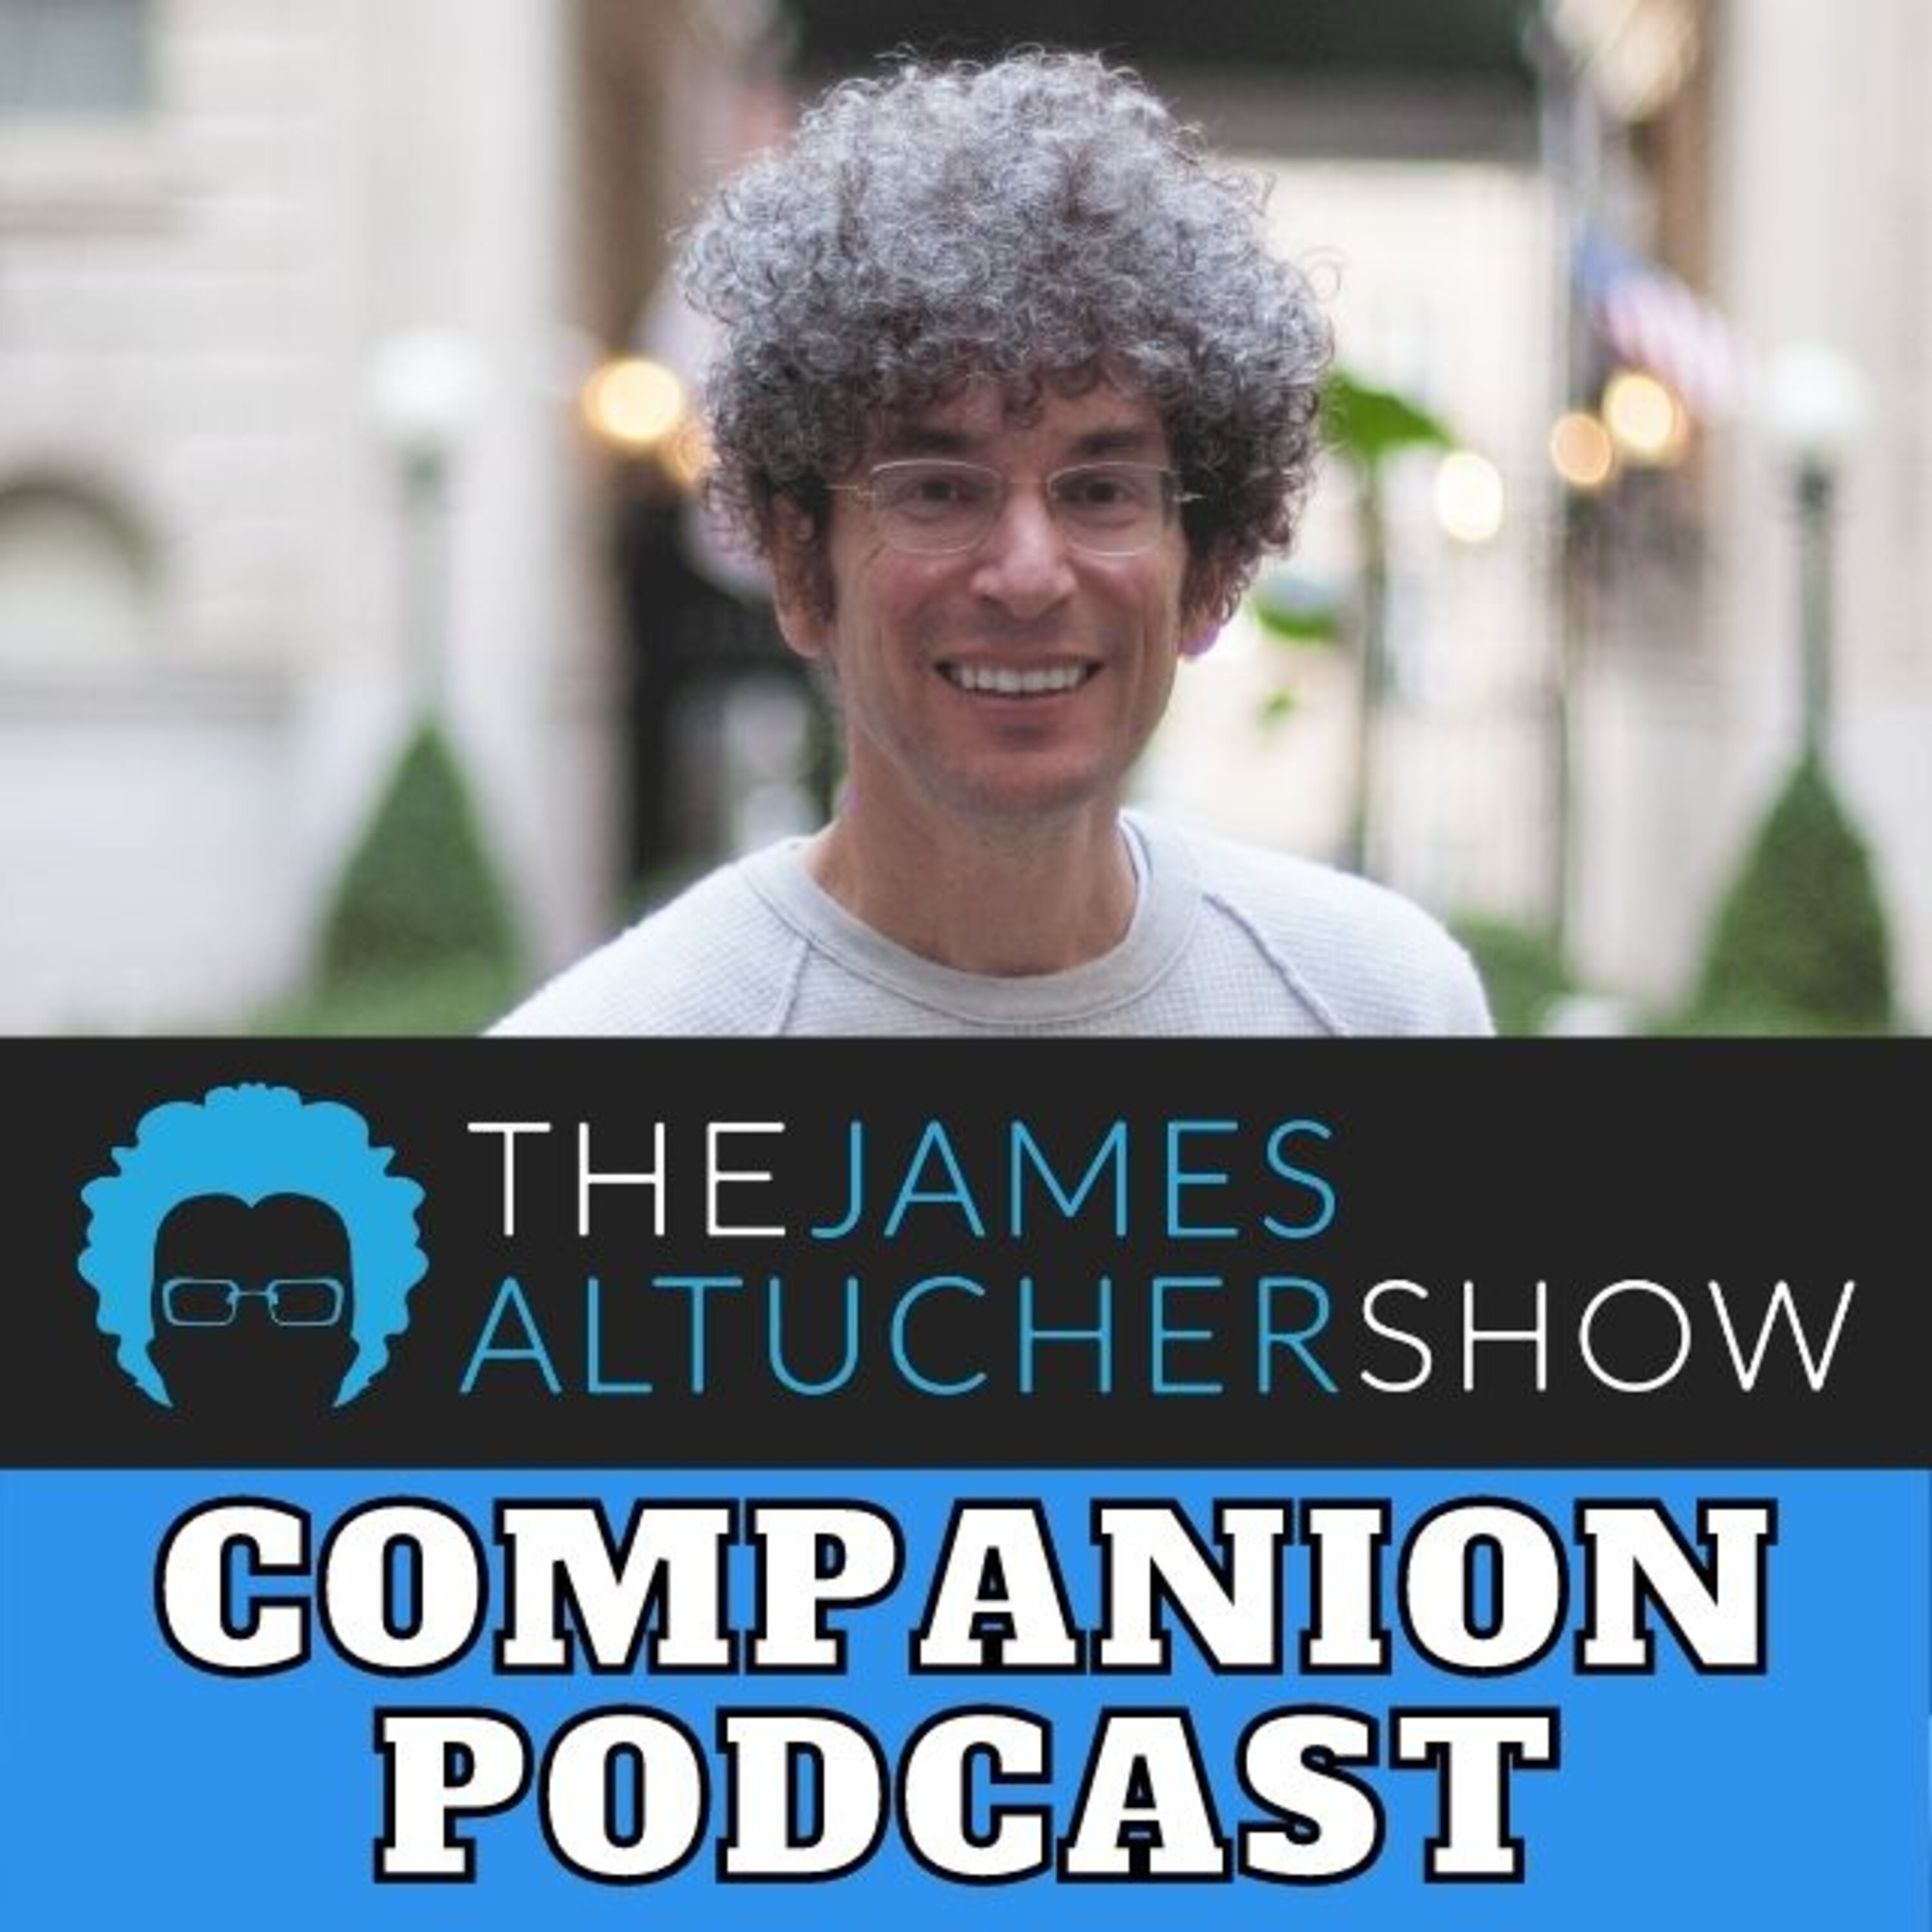 The Companion Podcast Episode 06: Should you or should you not narrate your own audio book?